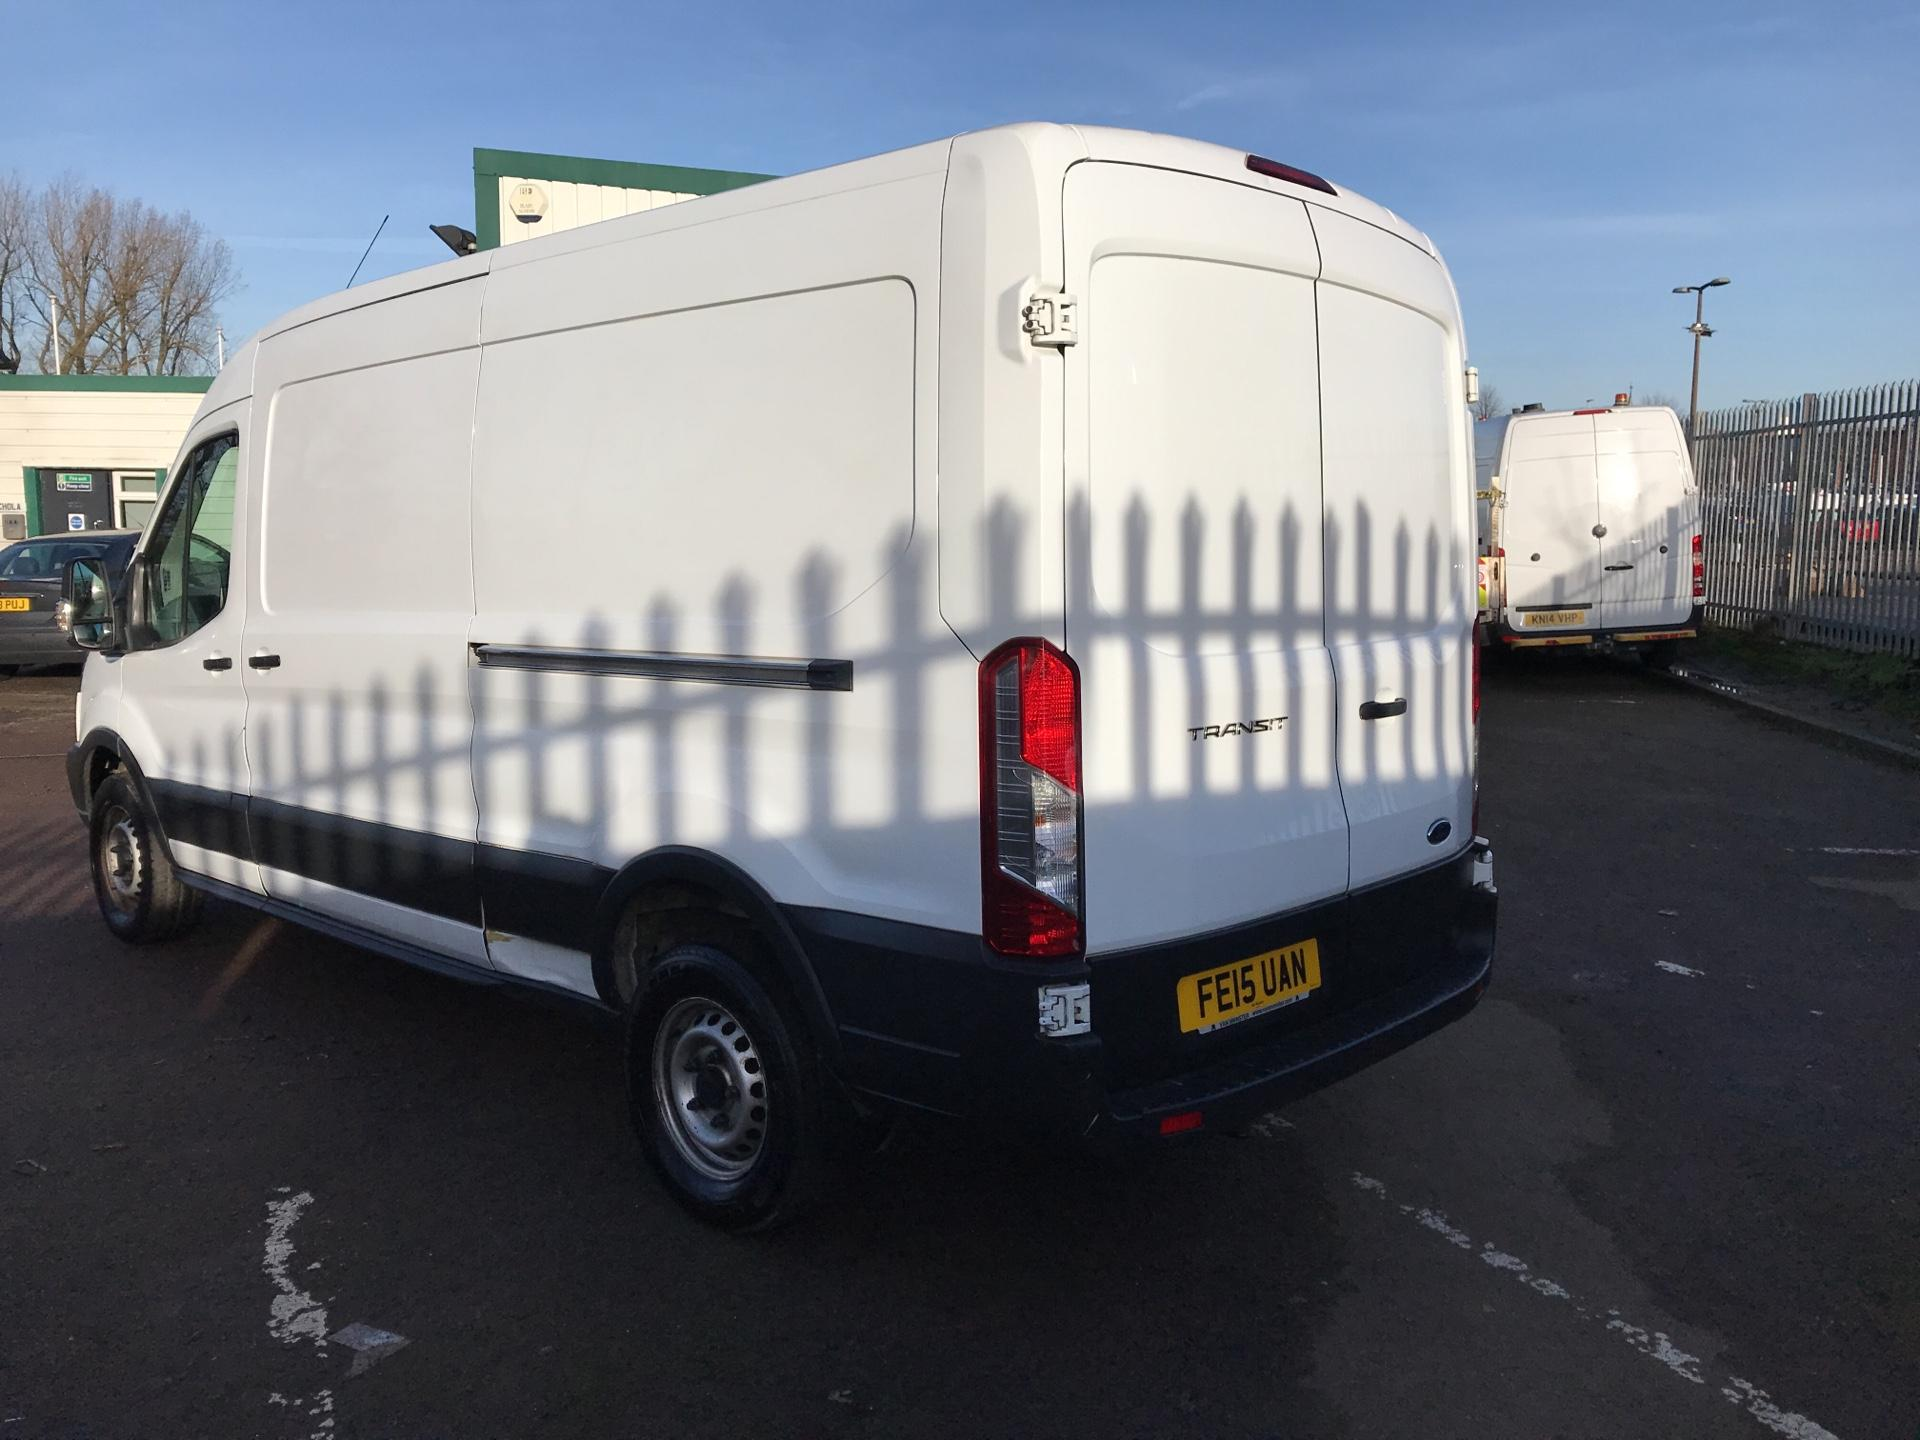 2015 Ford Transit 350 L3 H2 VAN 125PS EURO 5 *VALUE RANGE VEHICLE - CONDITION REFLECTED IN PRICE* (FE15UAN) Image 5